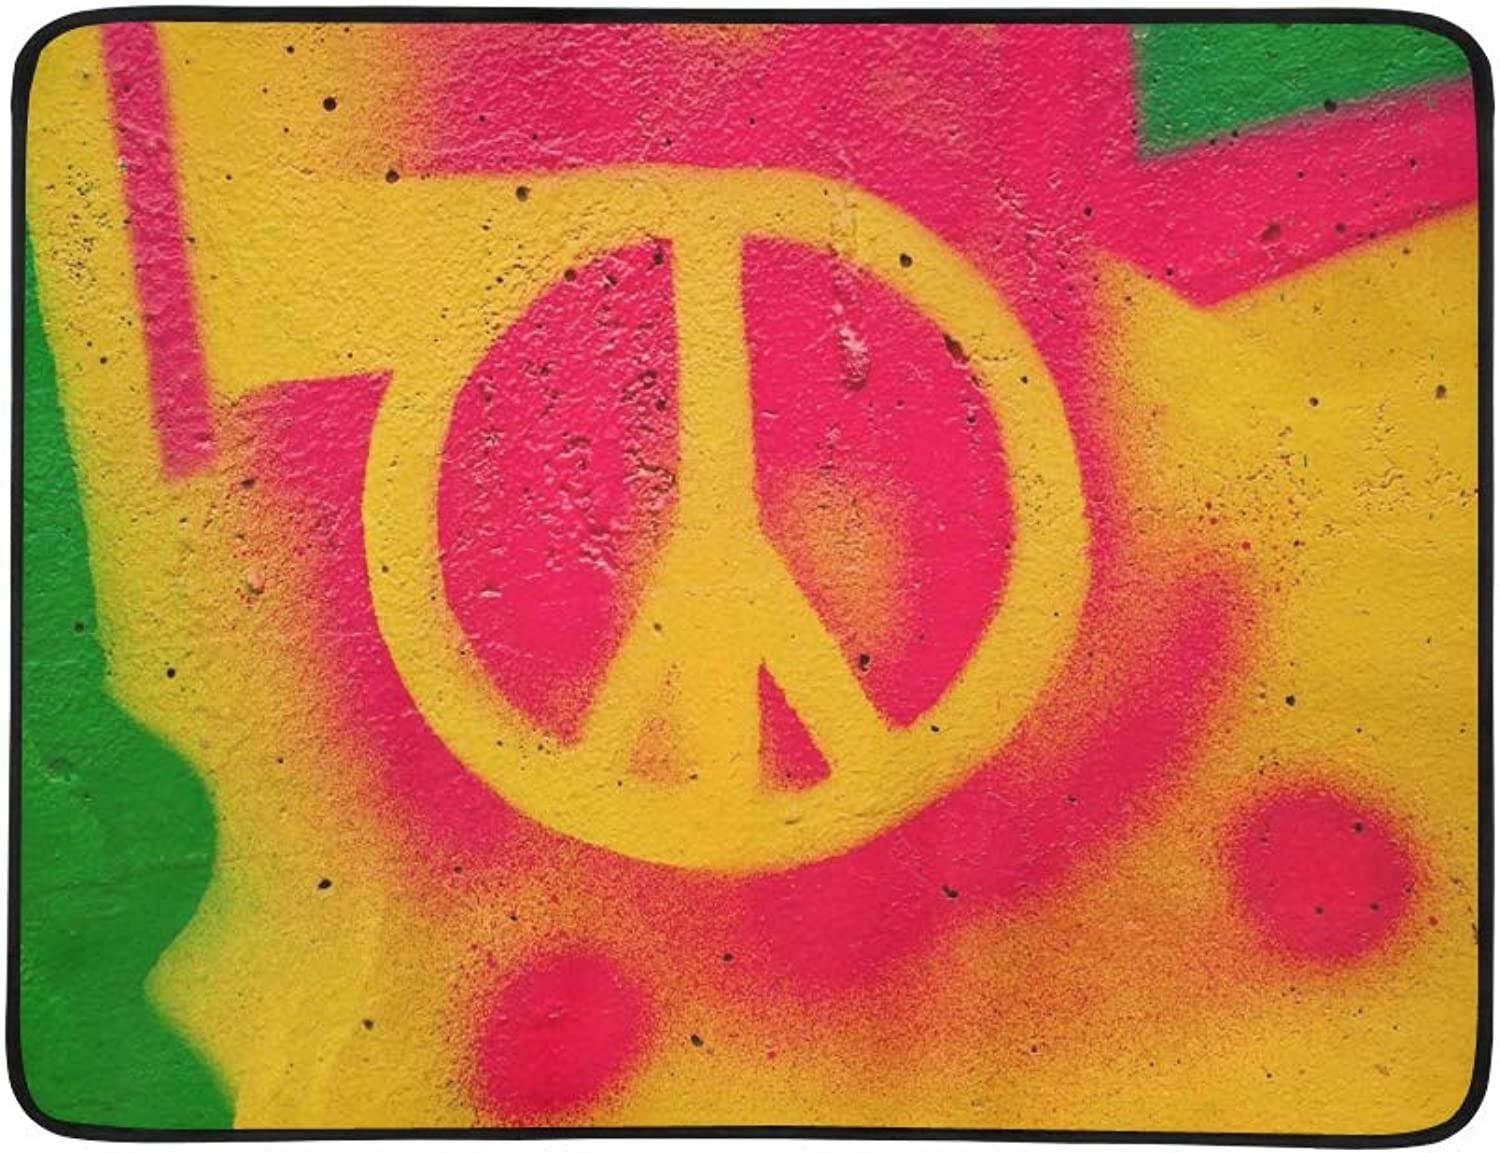 Peace Graffiti Sign On Wall Portable and Foldable Blanket Mat 60x78 Inch Handy Mat for Camping Picnic Beach Indoor Outdoor Travel